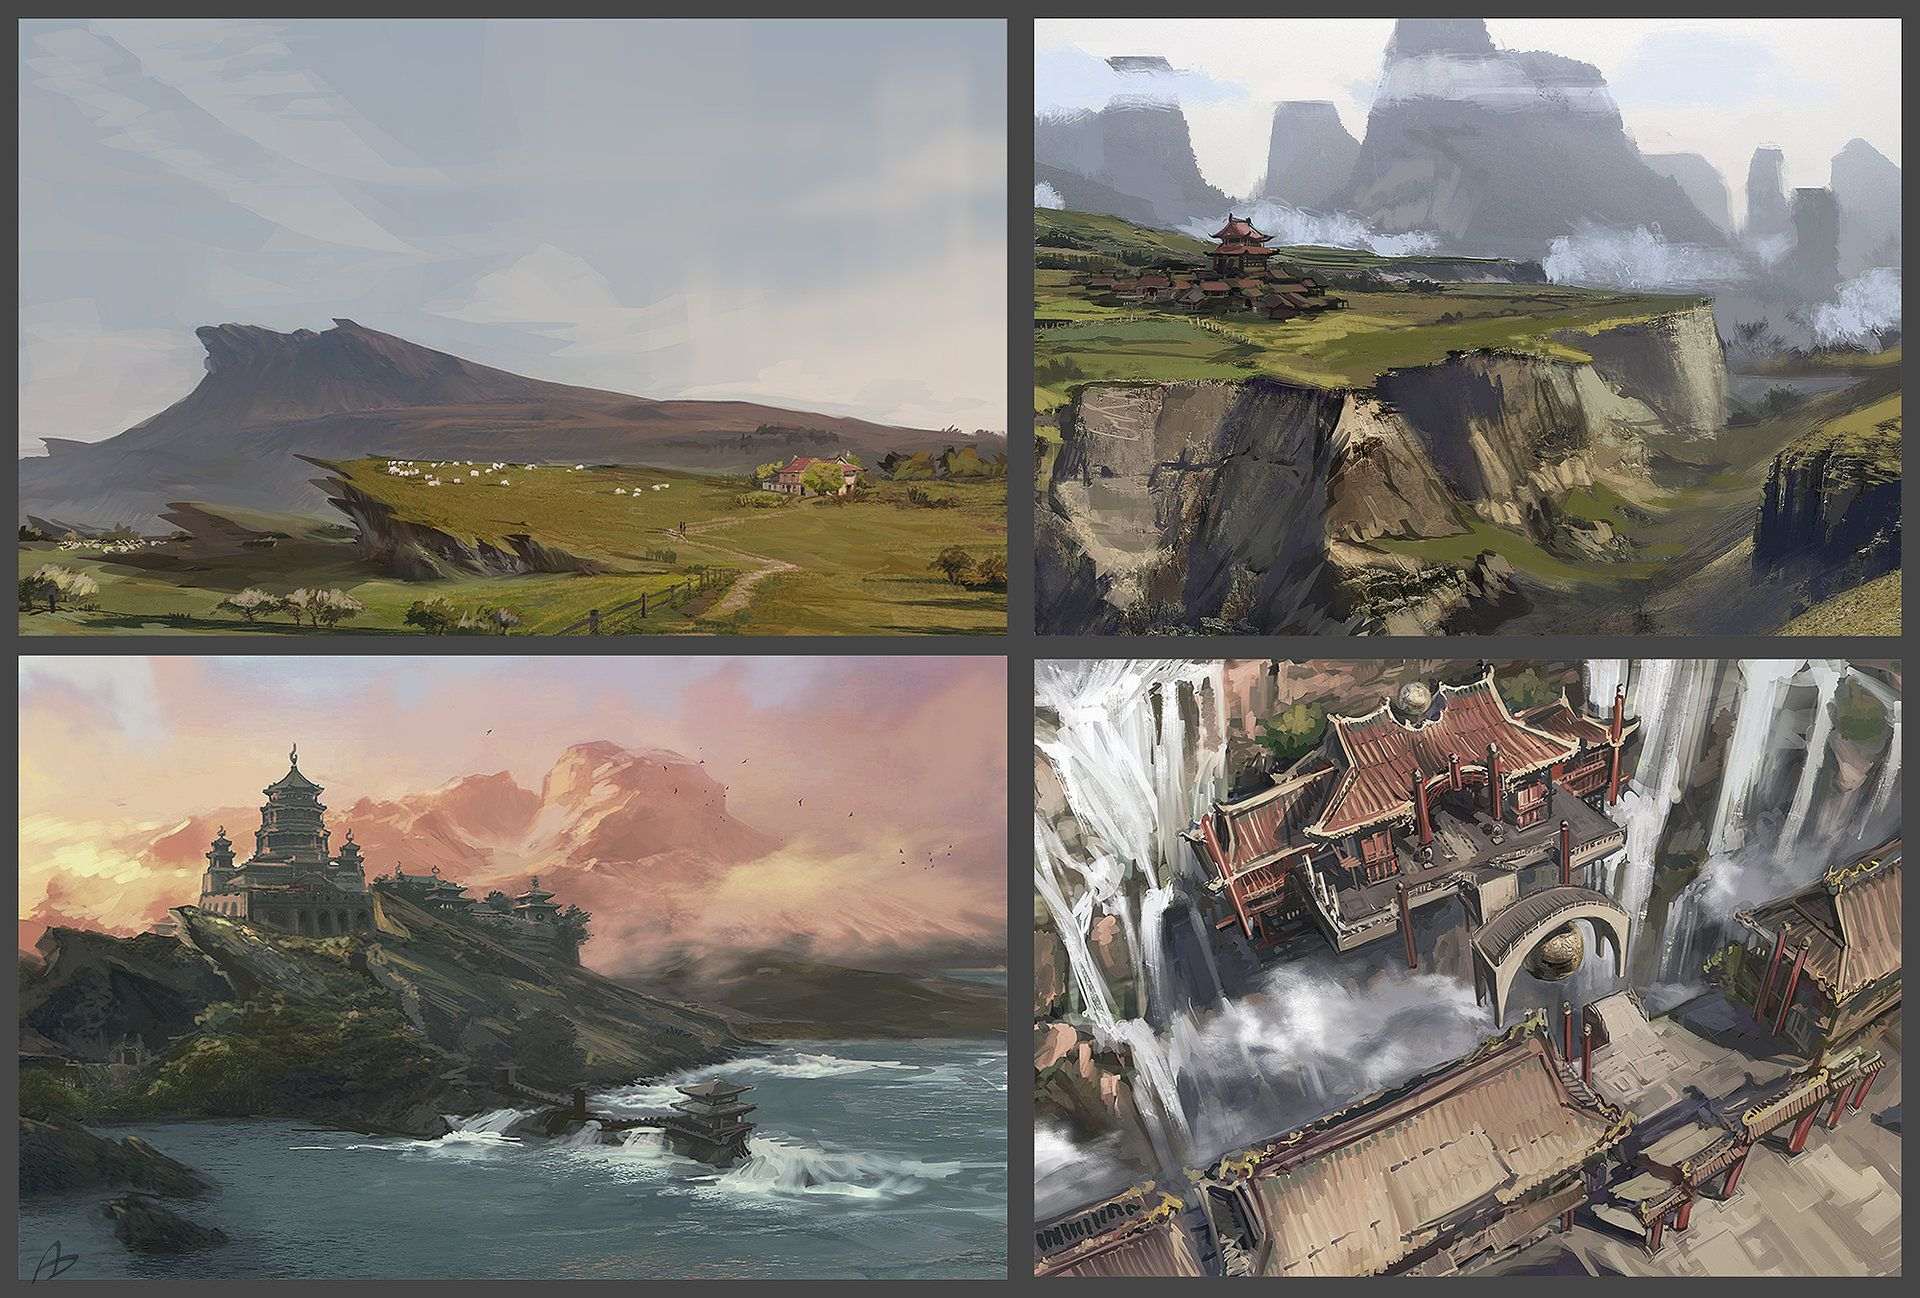 ArtStation - Setting sketches, Victoriya Anda